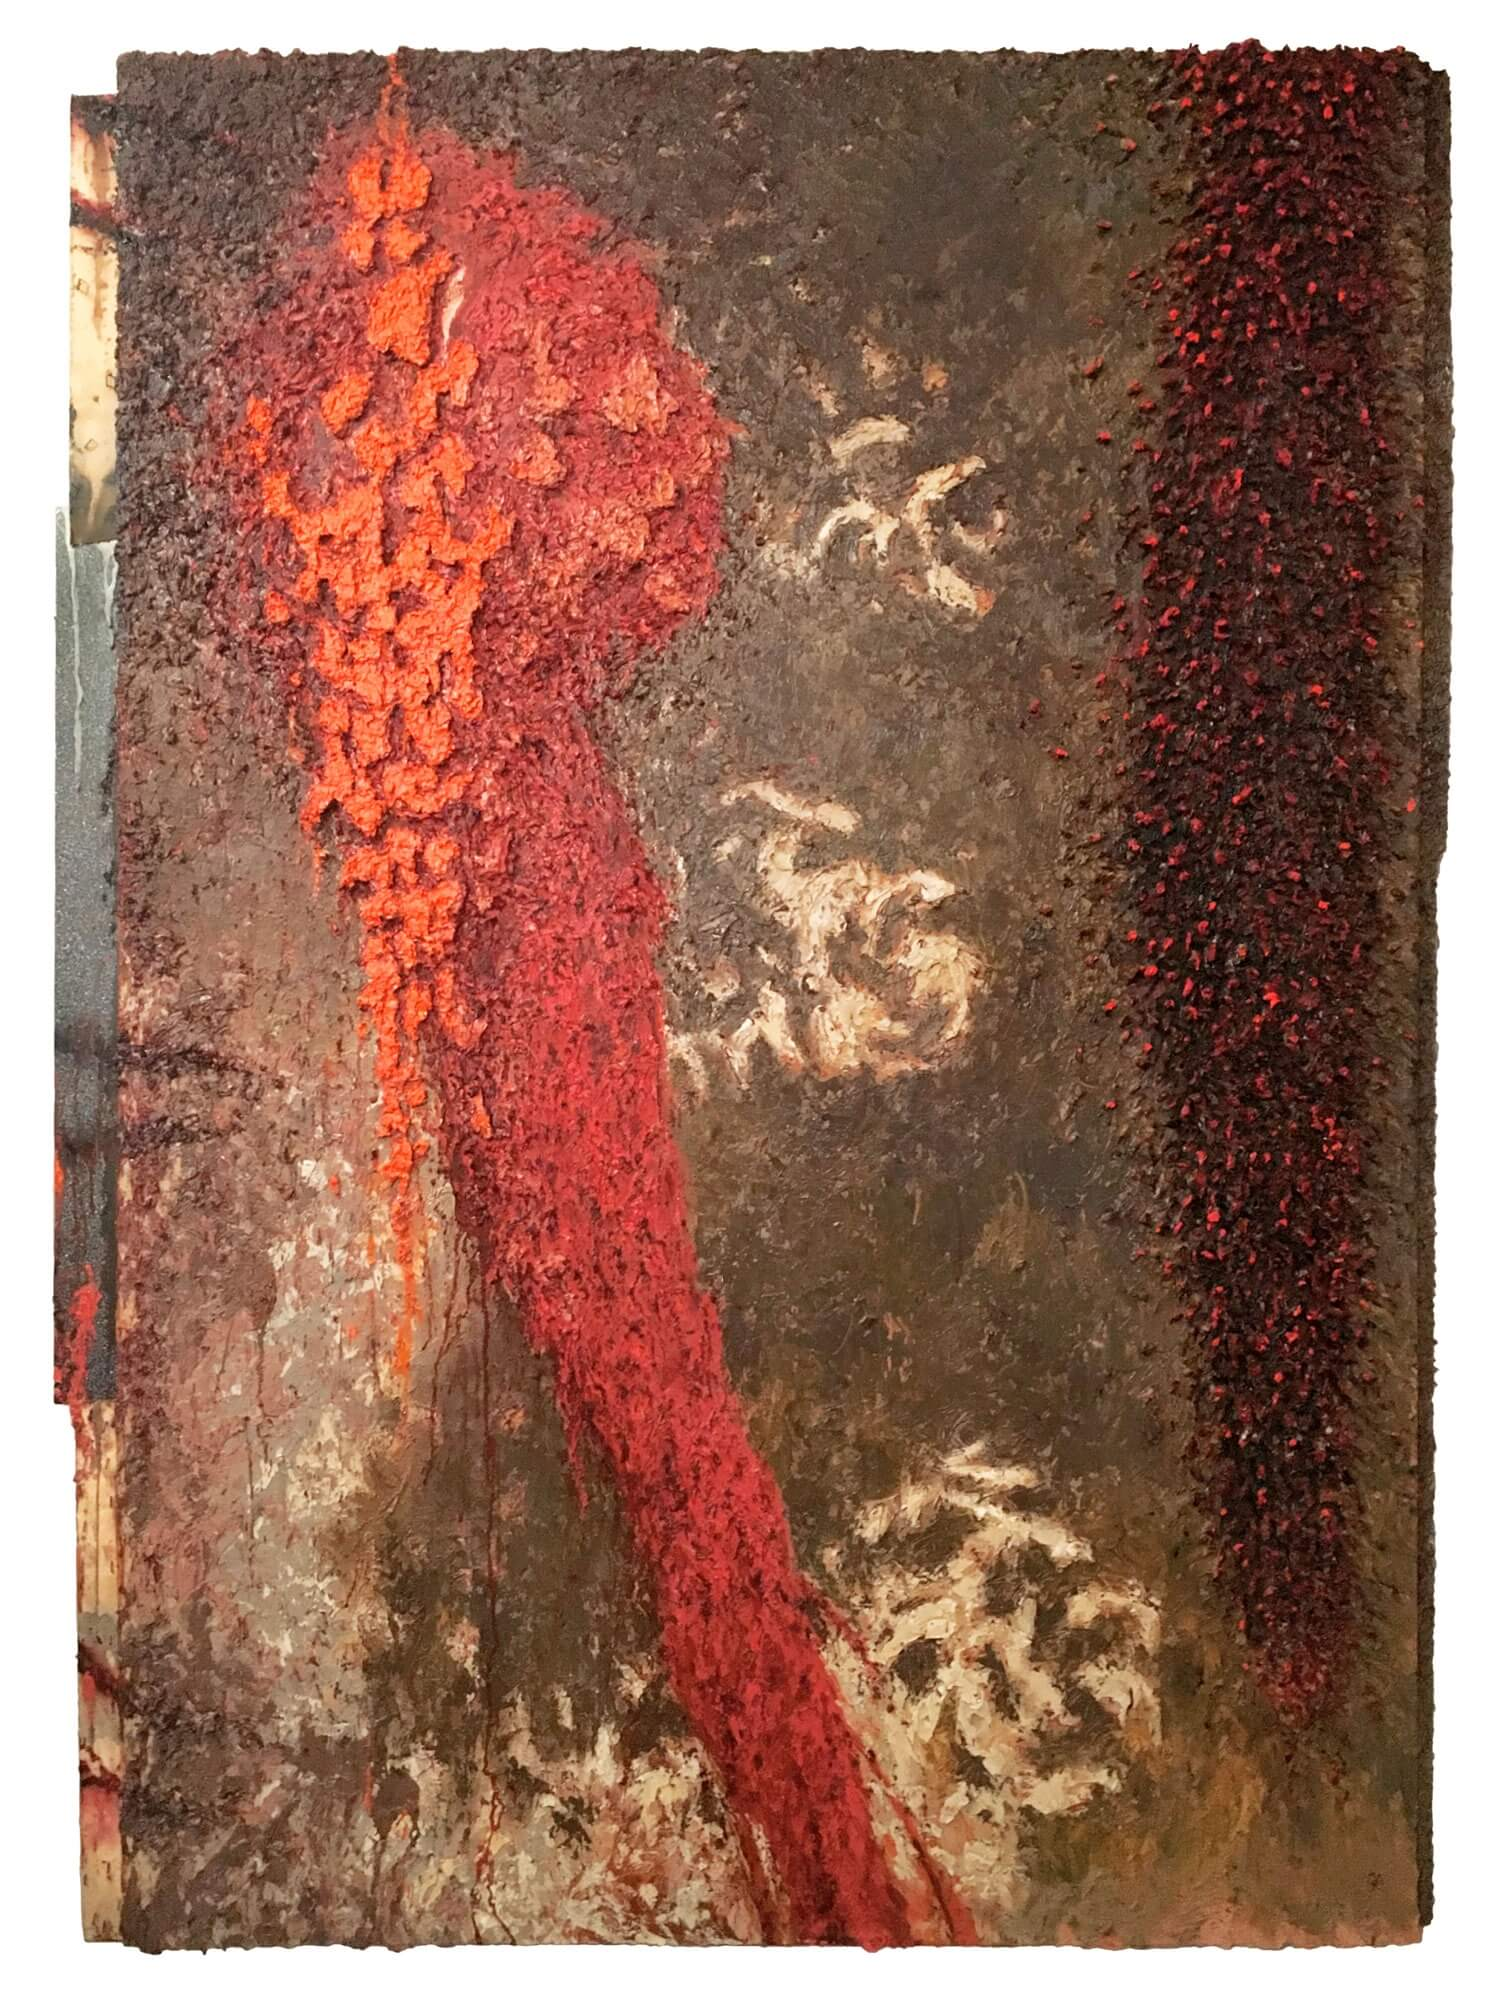 Len Bellinger, pox populi, 1994-95, oil, staples, formica, canvas on canvas, 71.5 x 48 inches (courtesy of David & Schweitzer Contemporary)